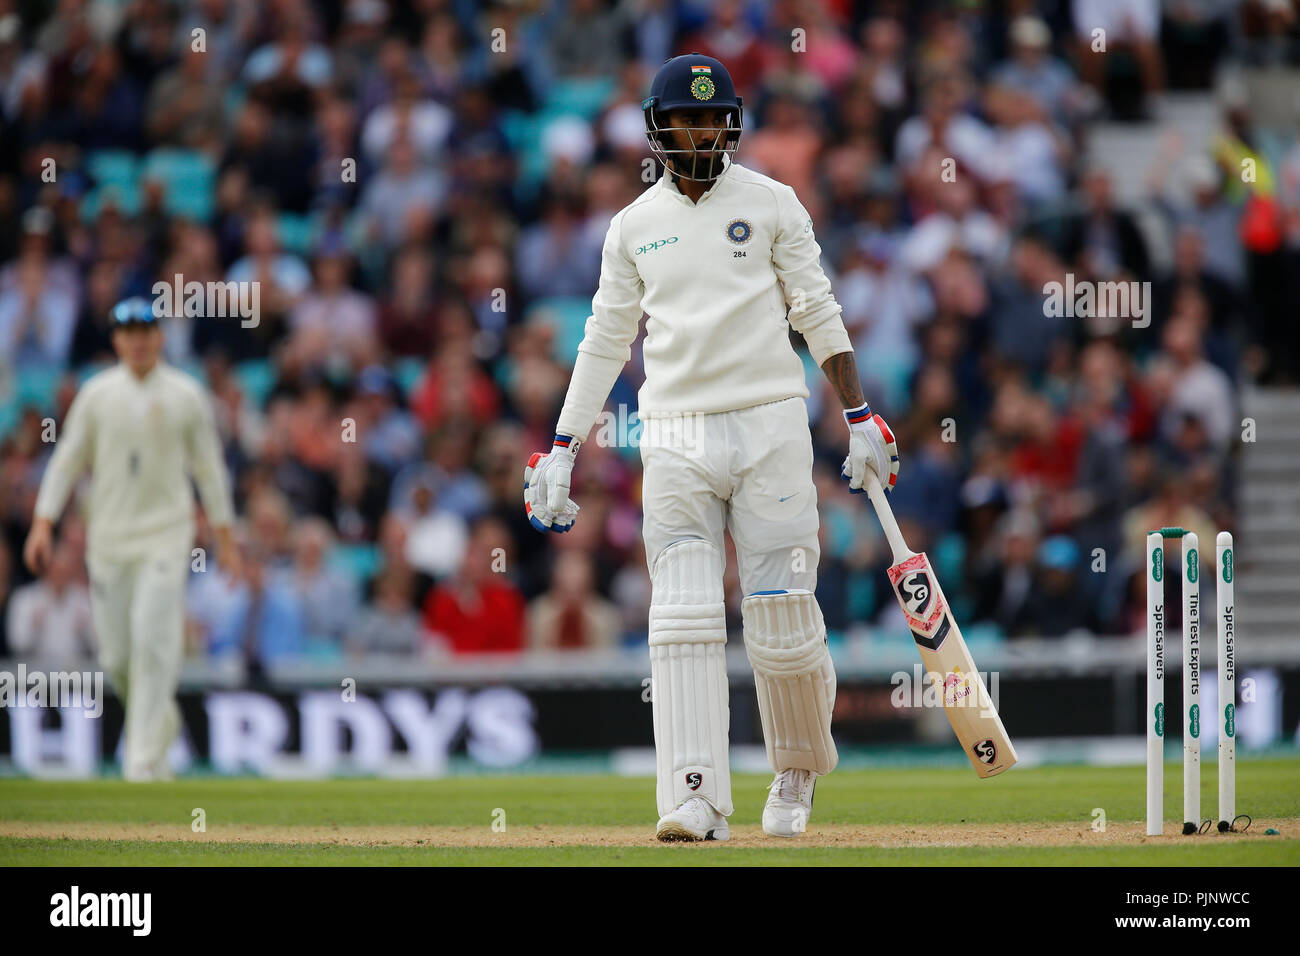 Kia Oval, London, UK. 8th Sep, 2018. Specsavers International Test Match Cricket, 5th test, day 2; KL Rahul of India is bowled by Sam Curran of England after the tea interval Credit: Action Plus Sports/Alamy Live News - Stock Image